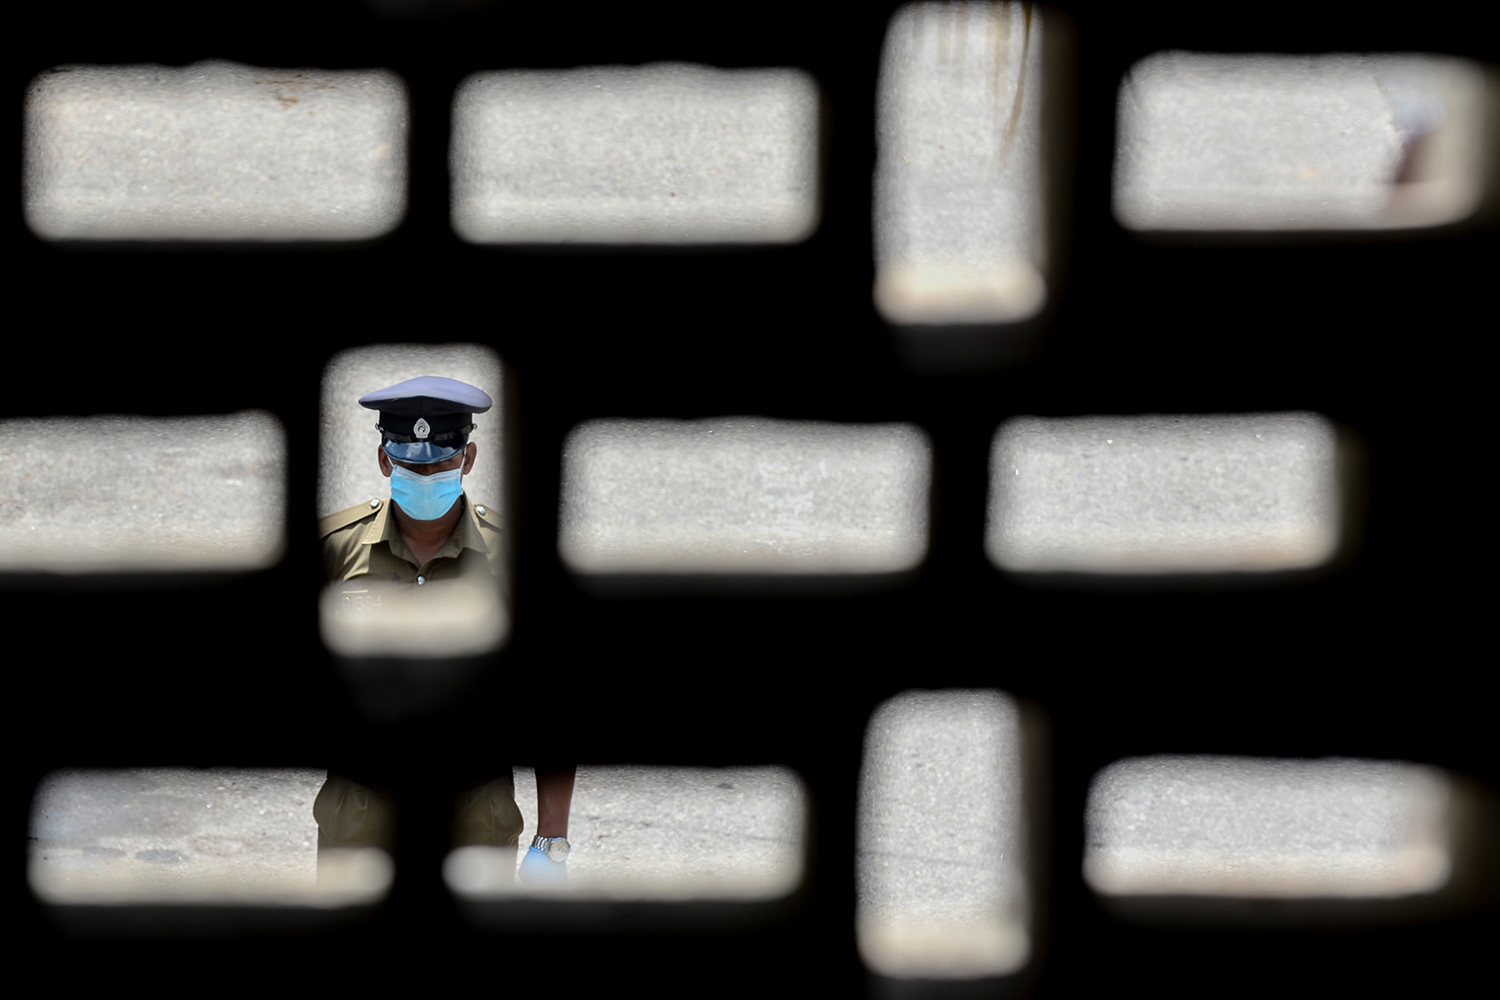 A policeman wearing a face mask stands guard outside a housing complex during a government-imposed nationwide lockdown in Colombo, Sri Lanka, on April 14. LAKRUWAN WANNIARACHCHI/AFP via Getty Images